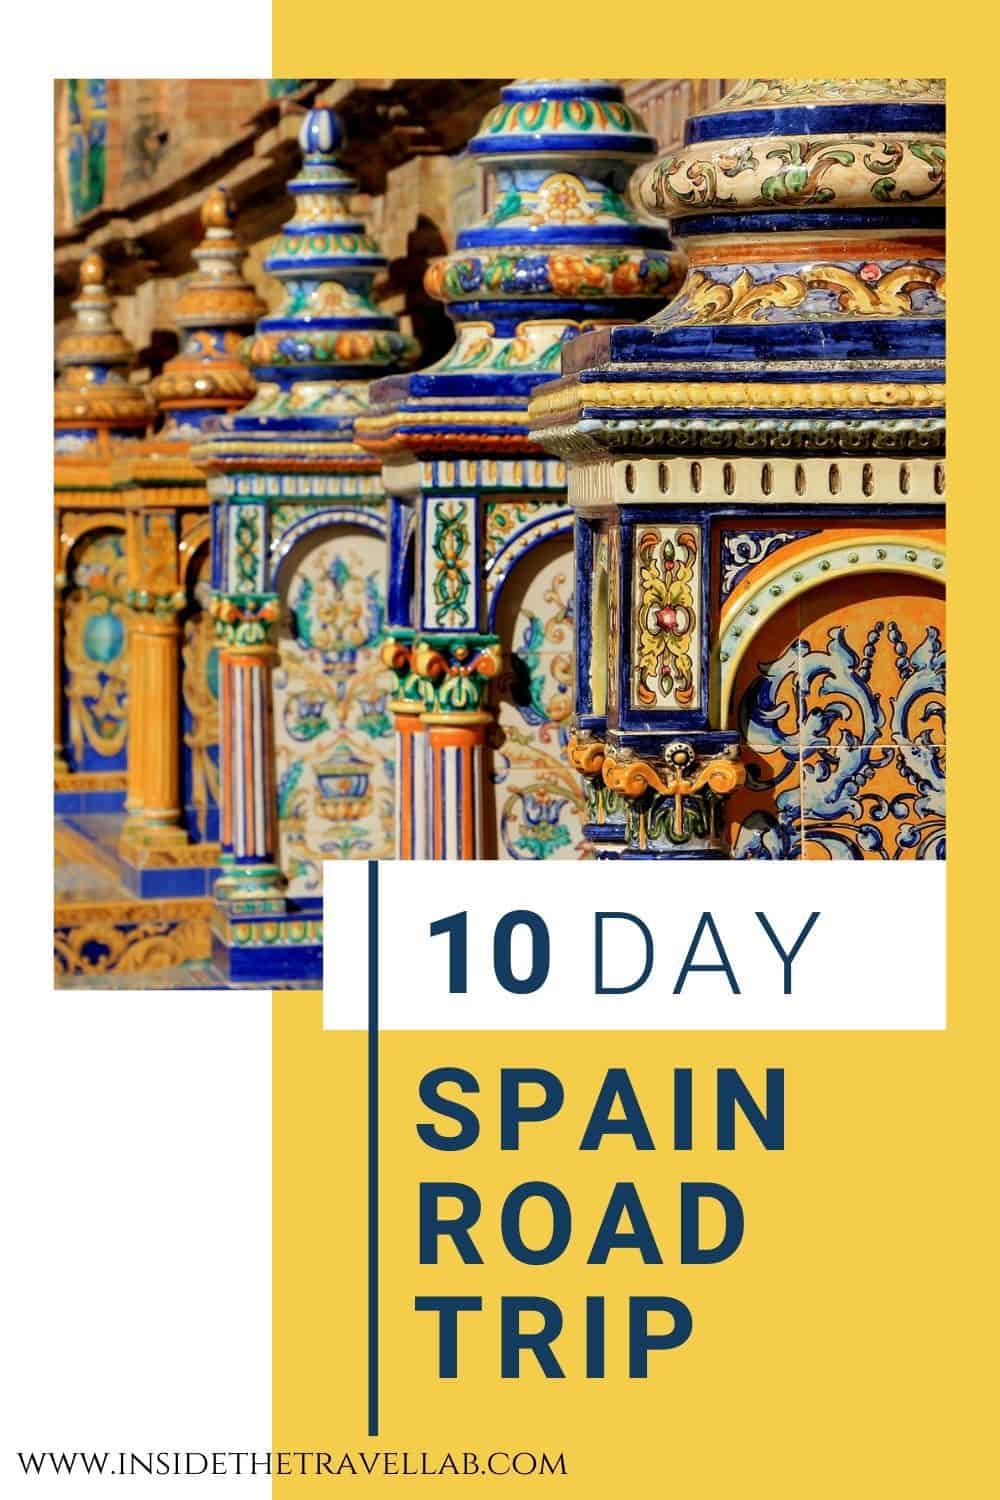 Southern Spain Travel Guide and Southern Spain Road Trip Itinerary - Plaza Espana Ceramics